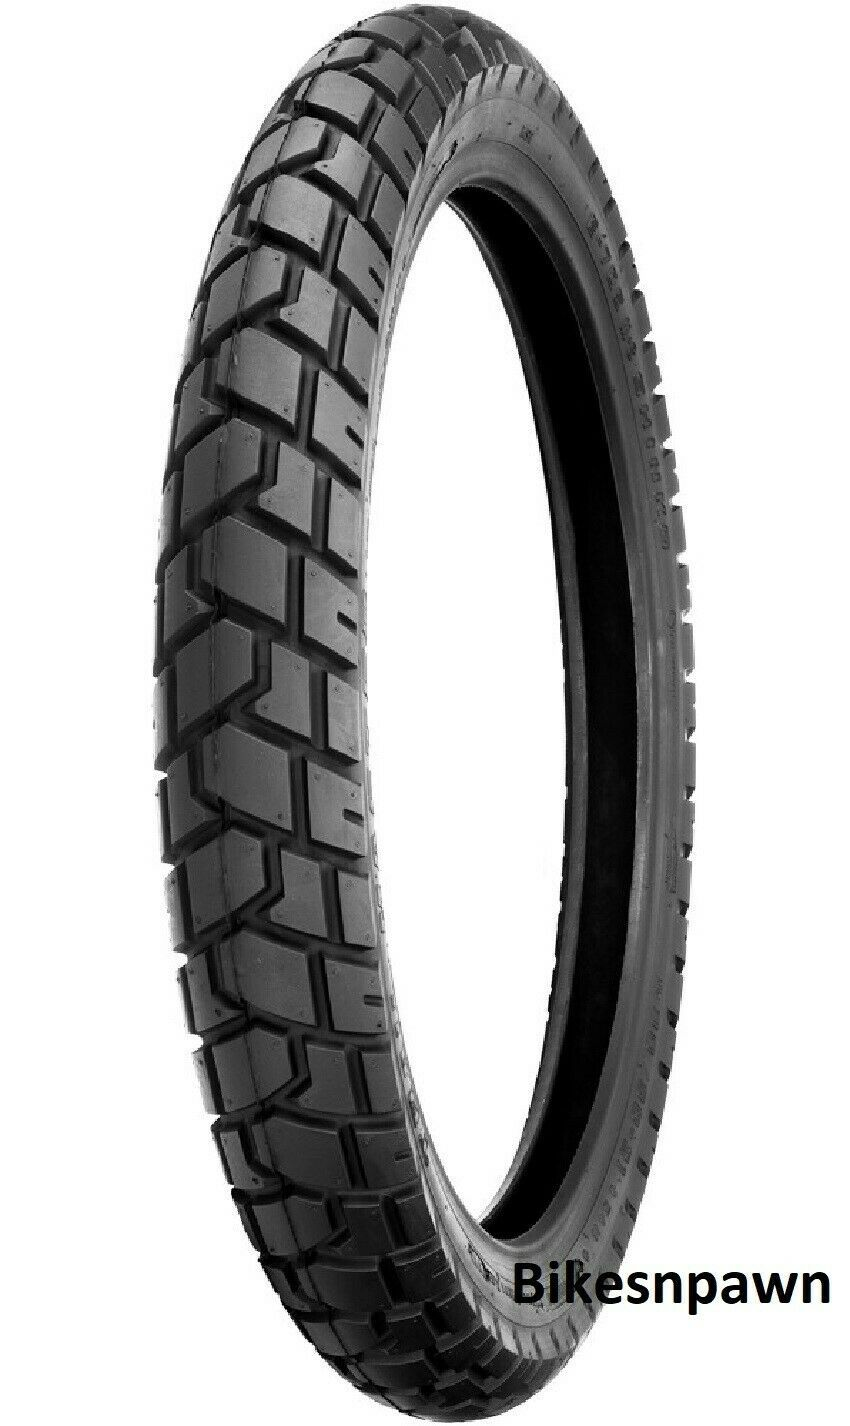 New 120/70R19 TL Shinko 705 Series Dual Sport Radial Front Motorcycle Tire 60H